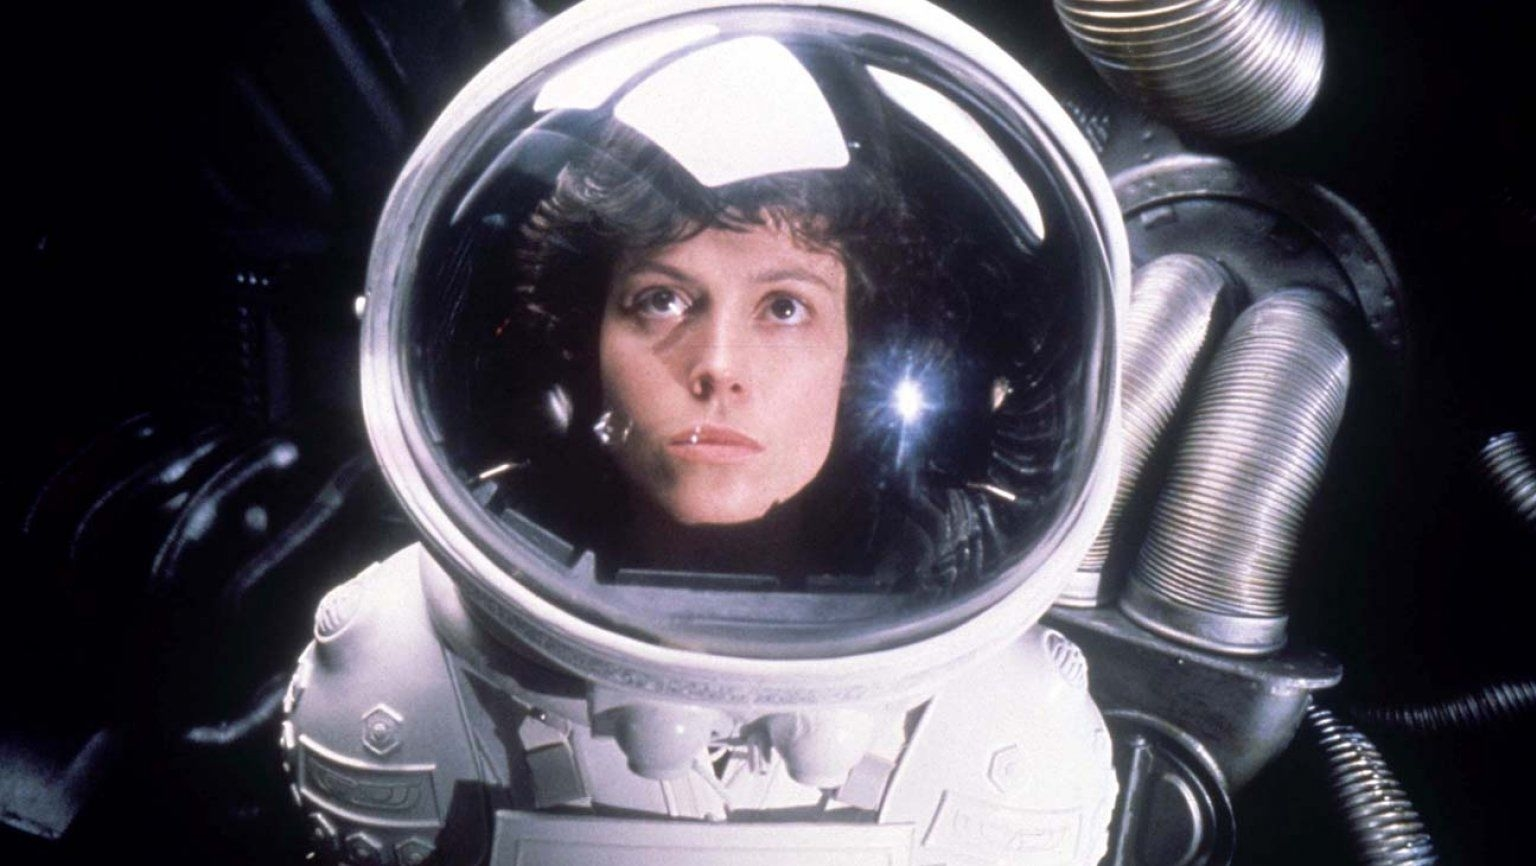 Ridley Scott's 'Alien' returns to theaters in October | DeviceDaily.com